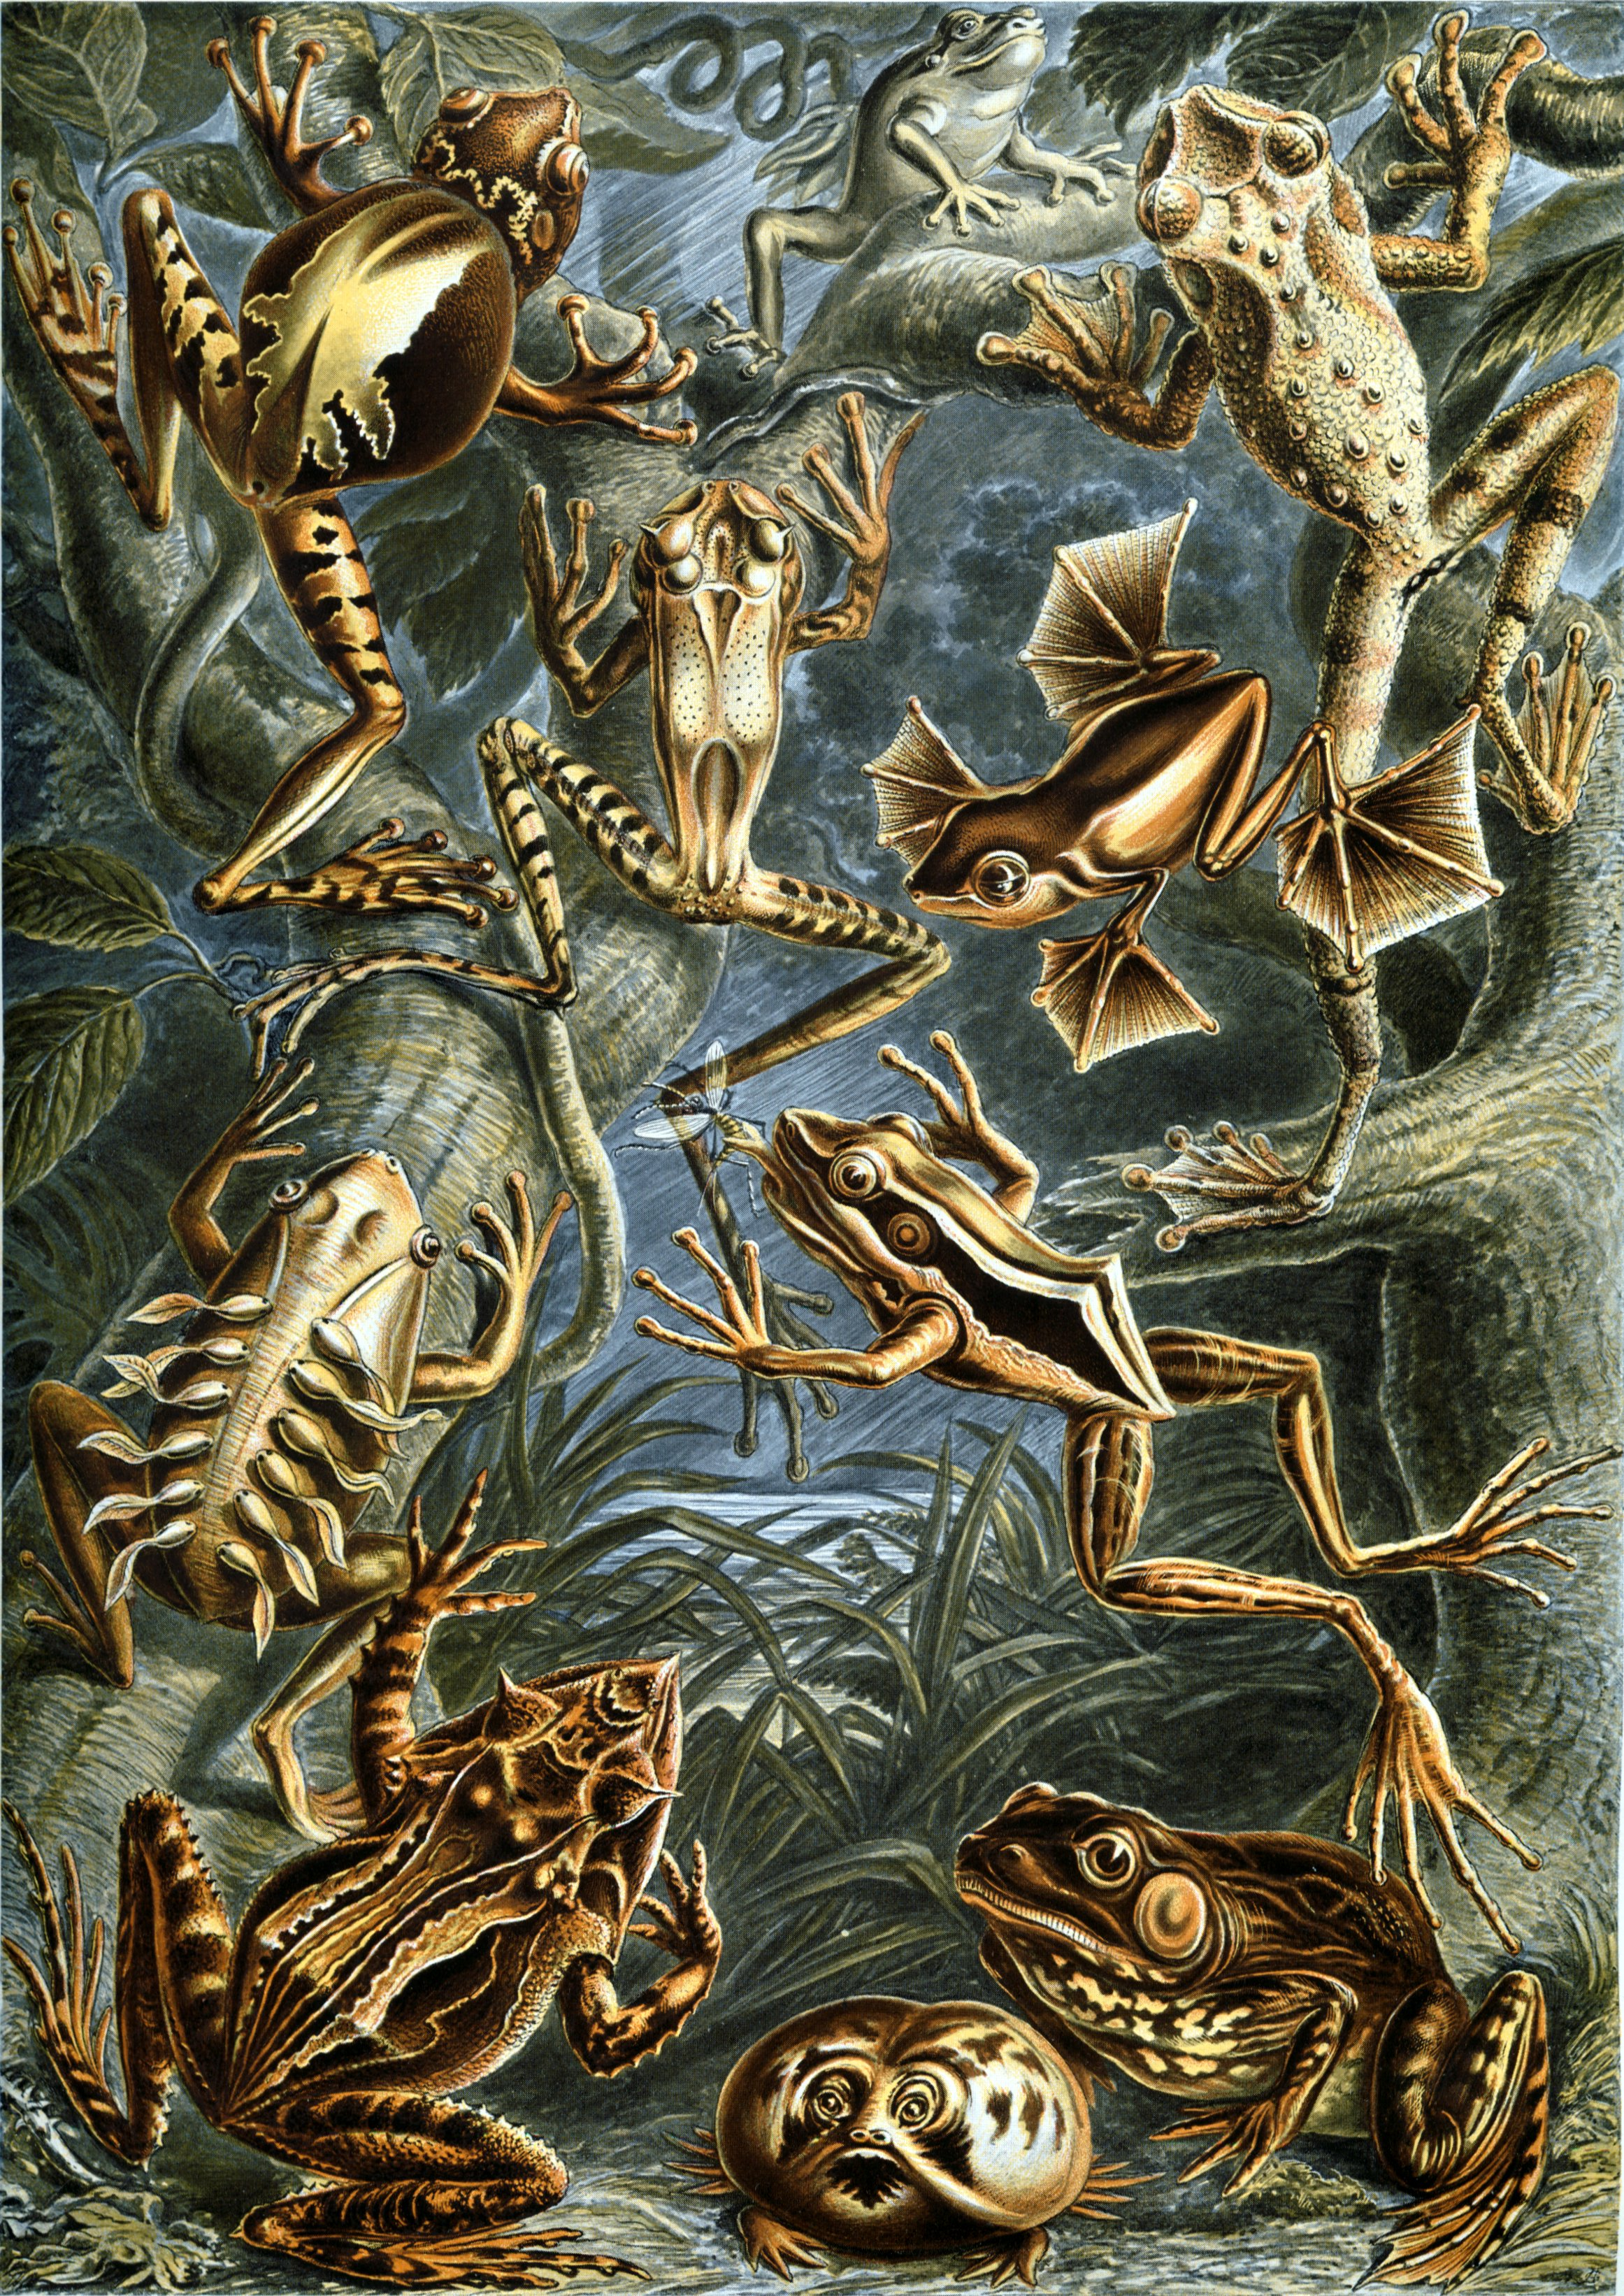 By Ernst Haeckel [Public domain], via Wikimedia Commons